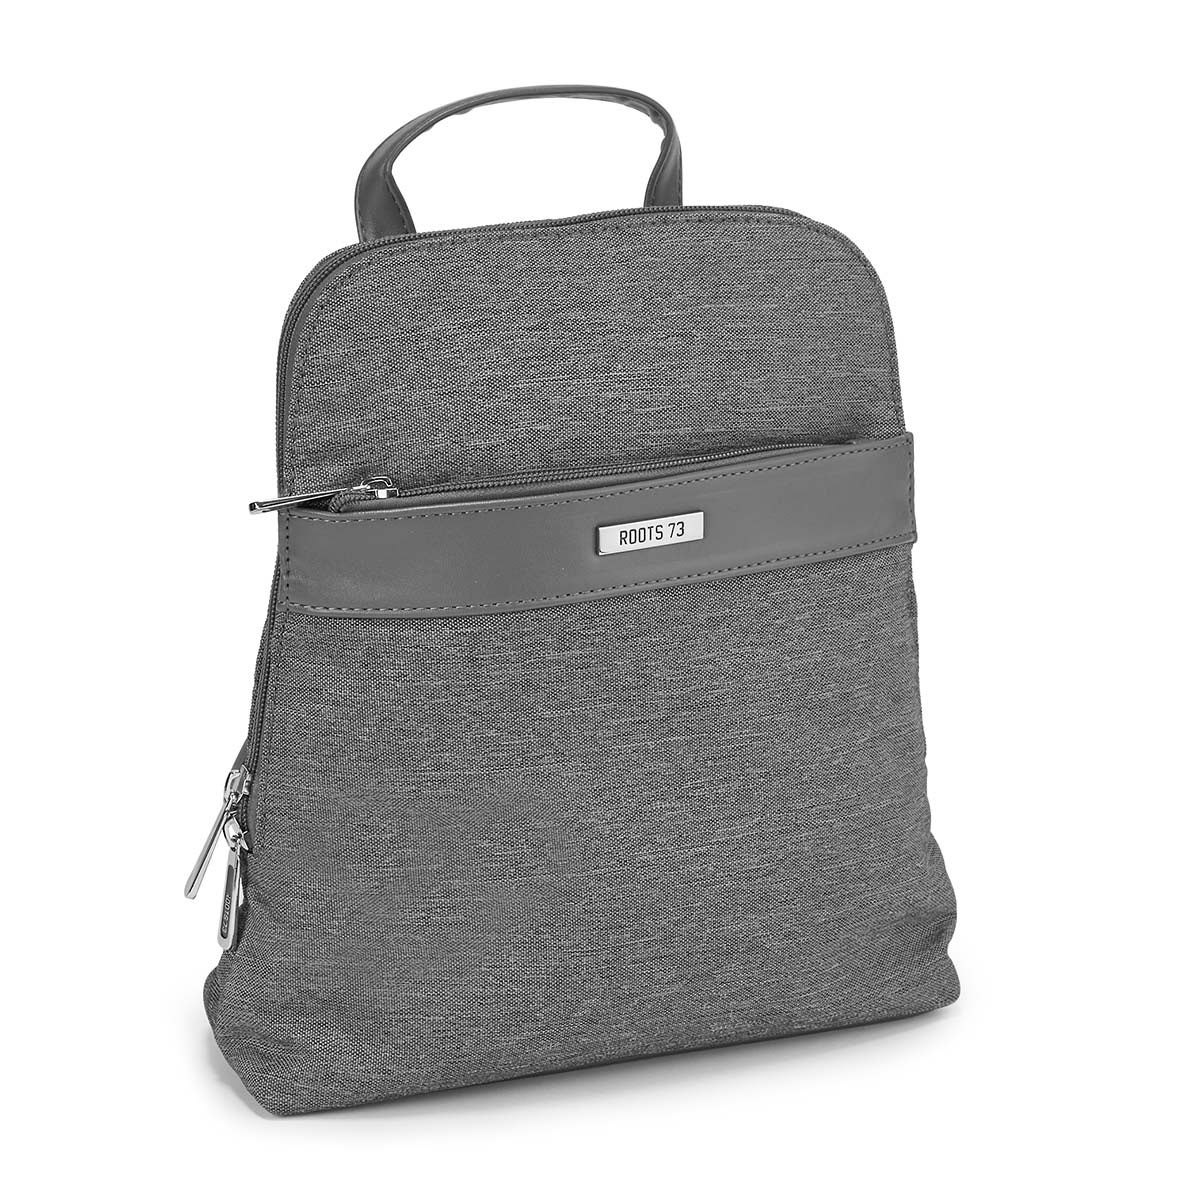 Women's R5096 Roots73 grey backpack